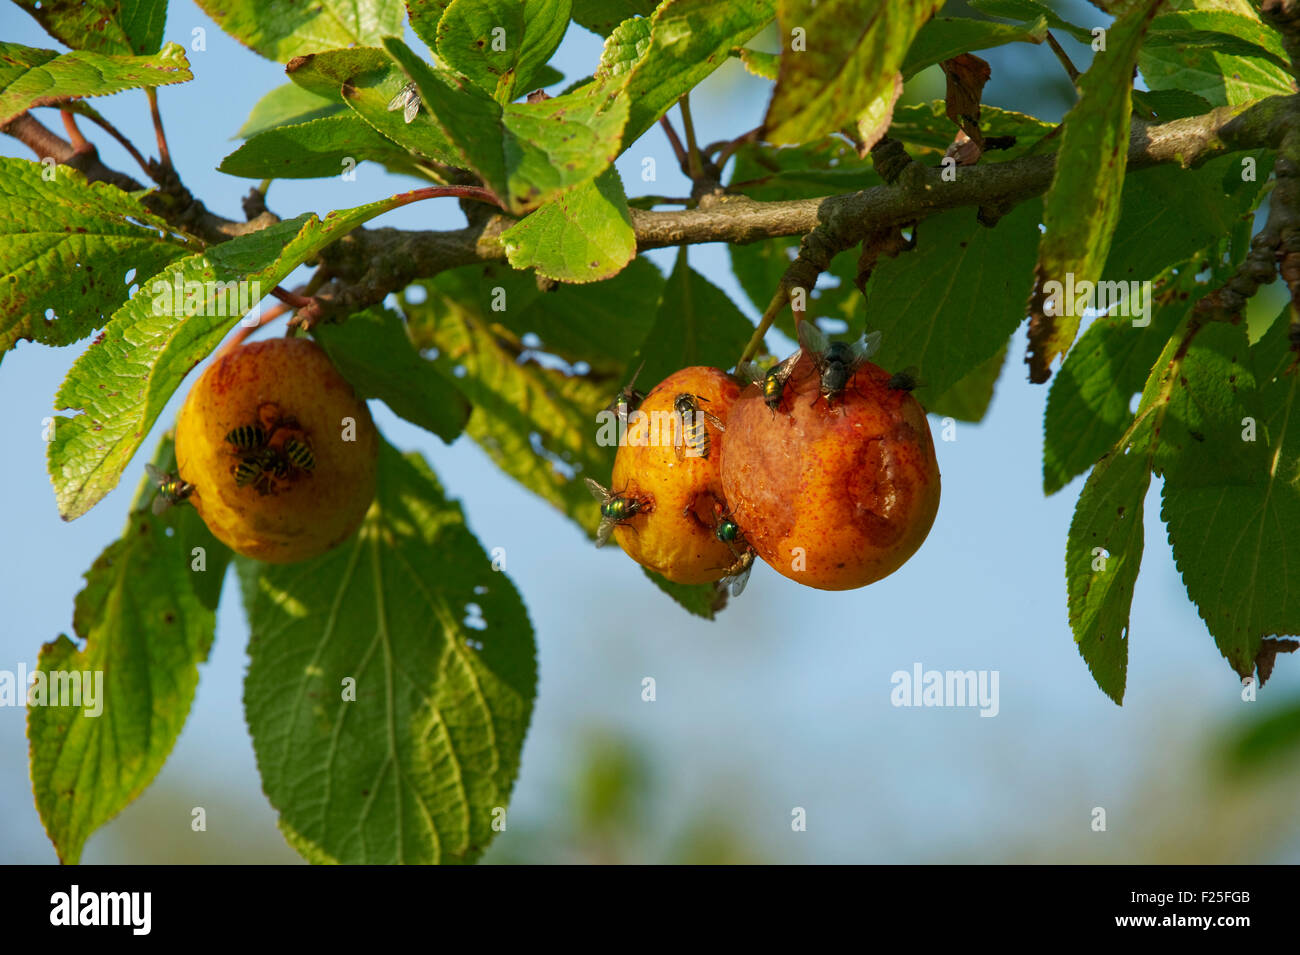 Insects on fruit - Stock Image